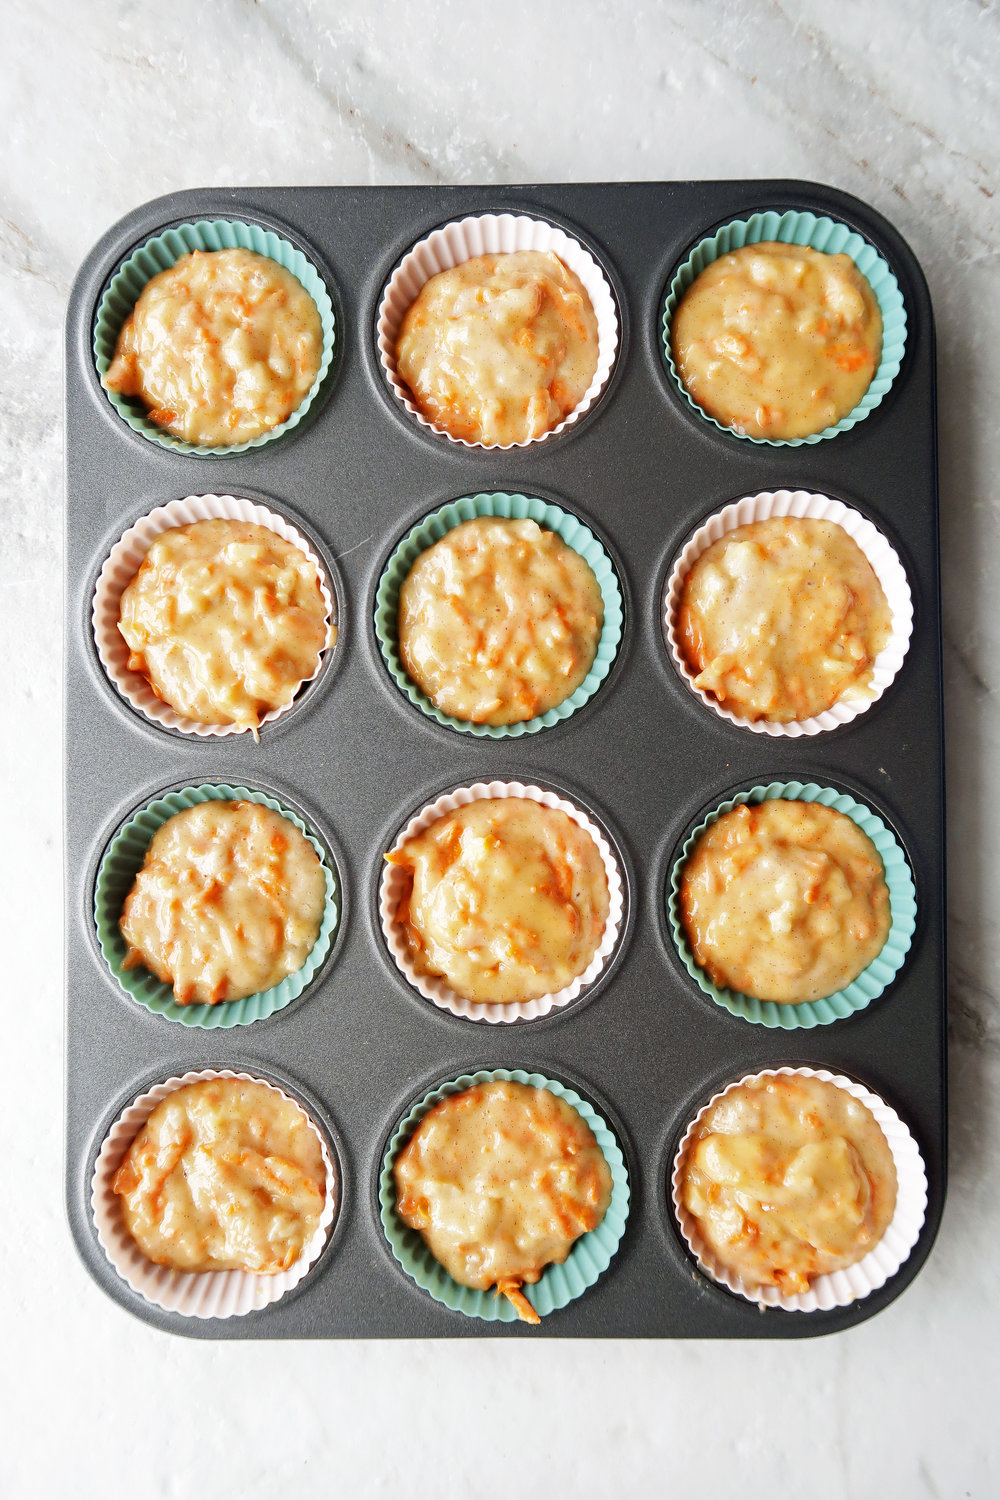 Pineapple carrot muffin batter placed in a dozen silicone liners in a muffin tin.